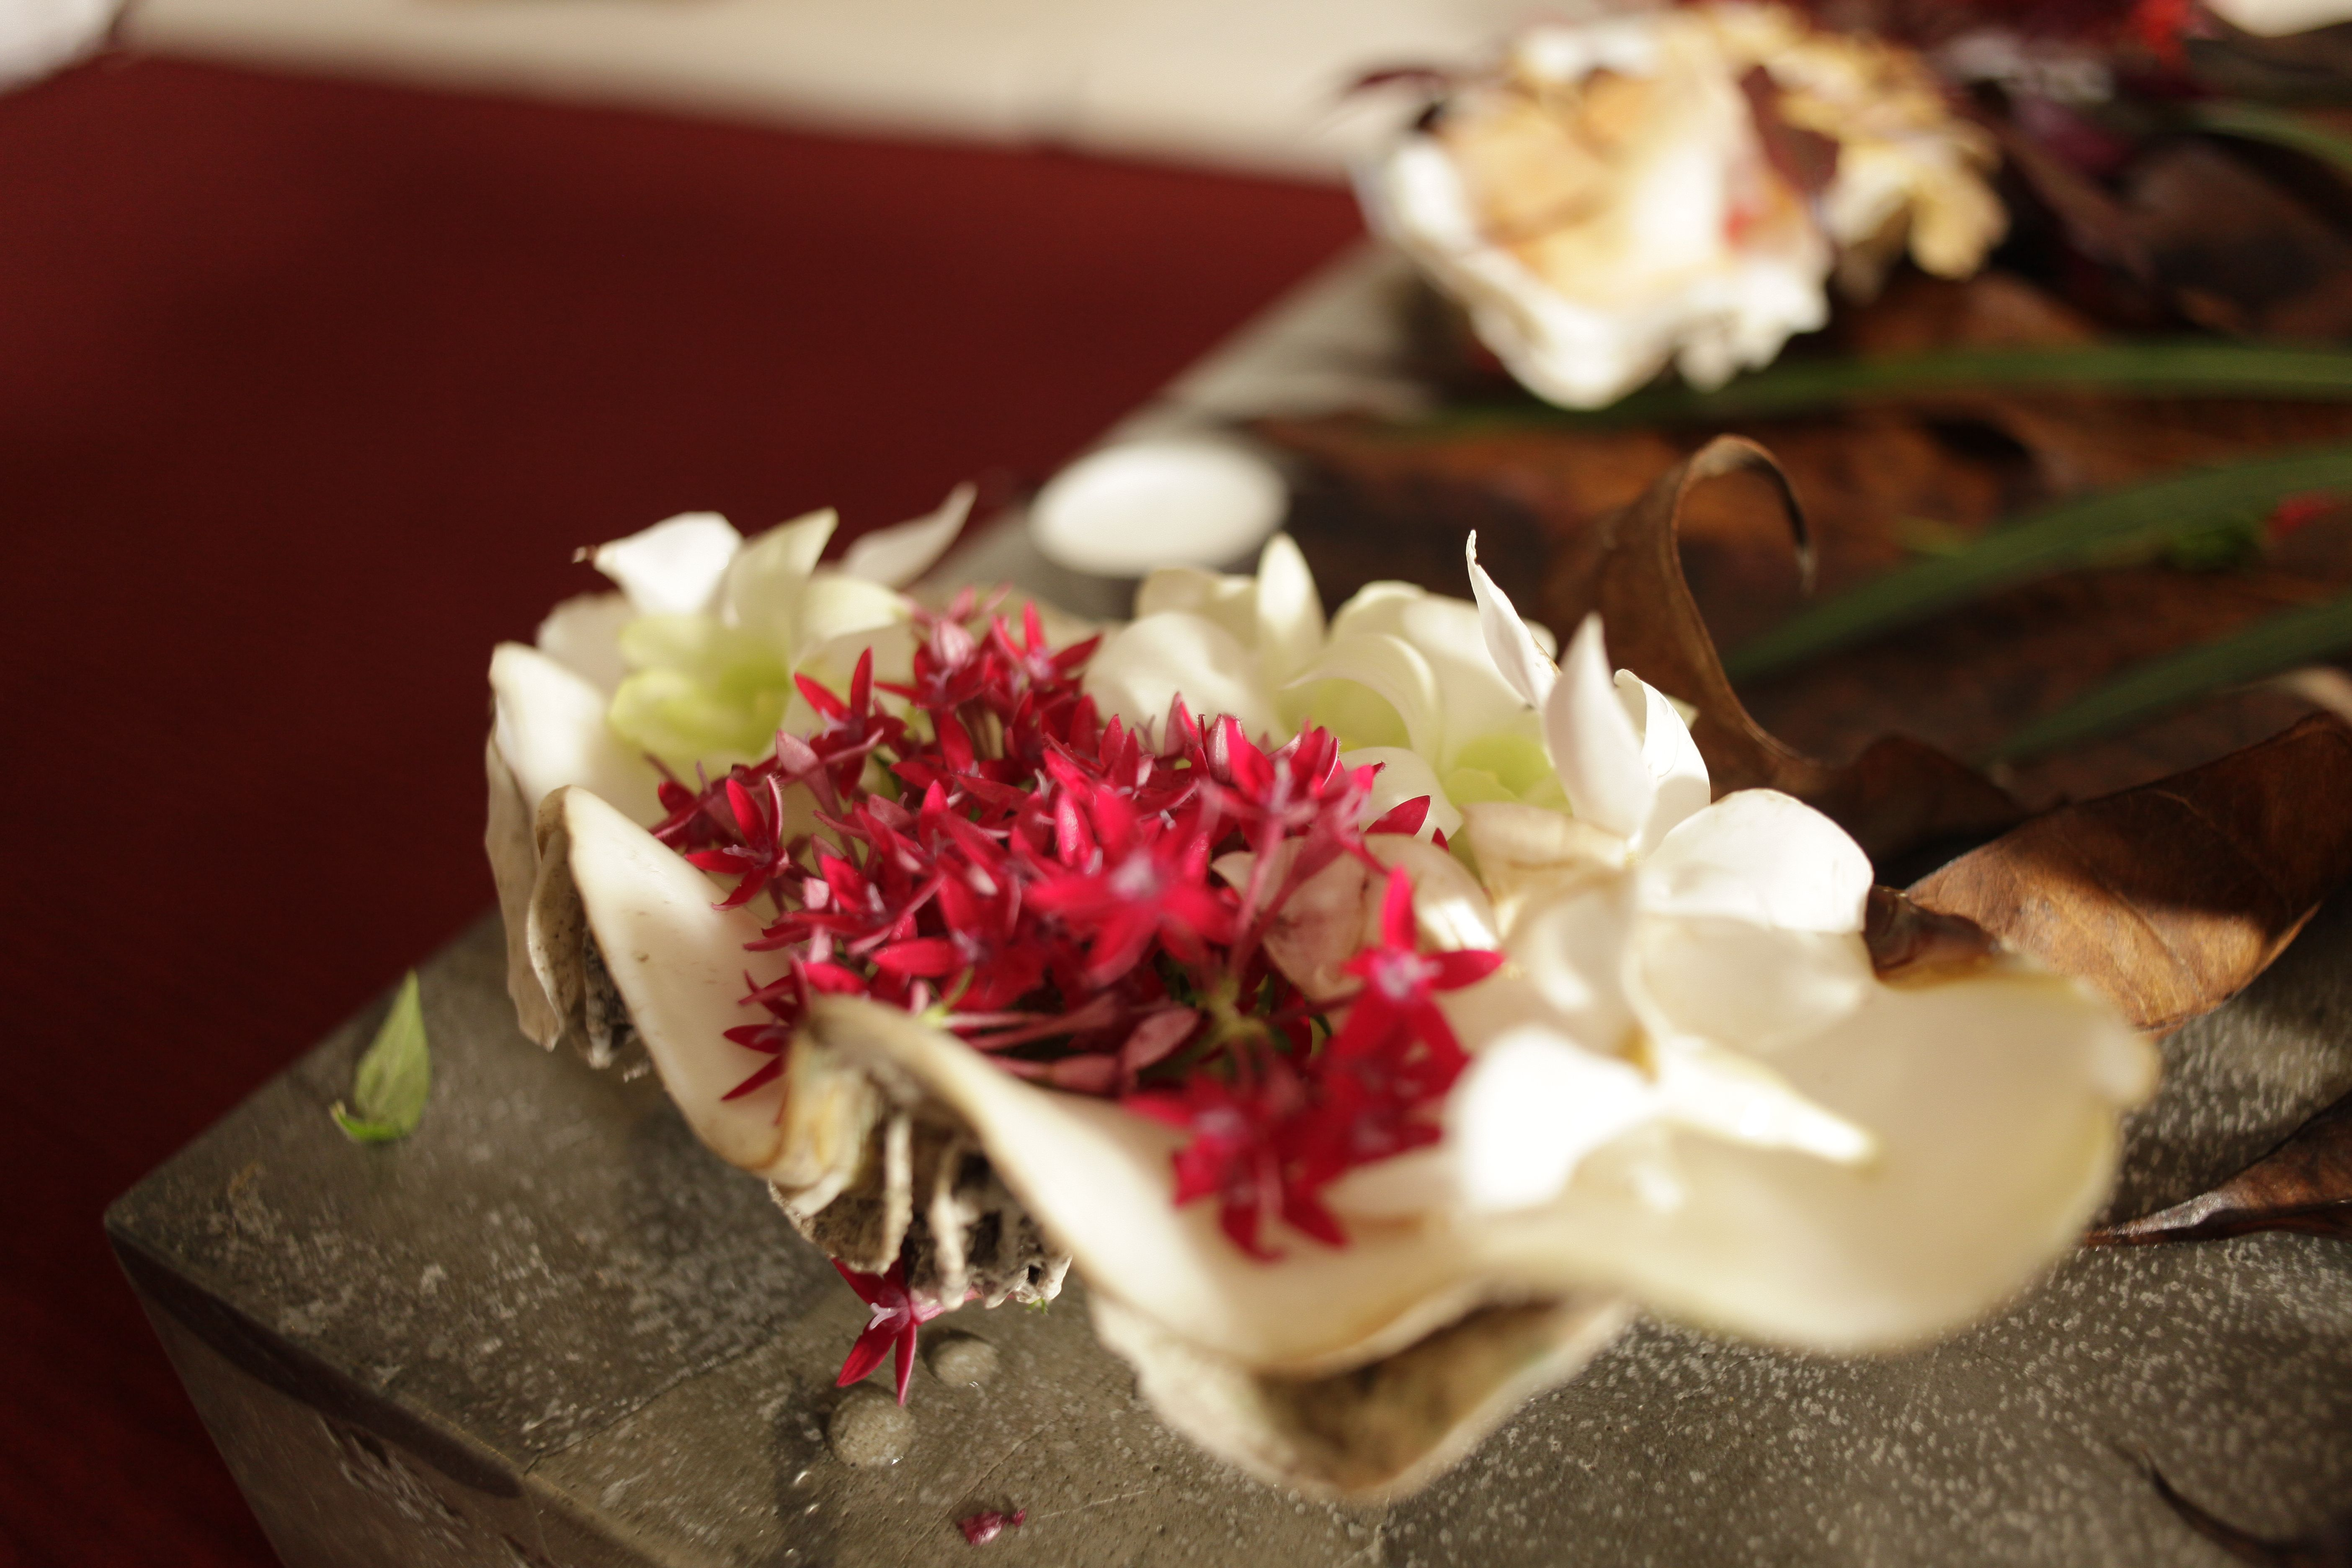 Mehndi Party Activities : Mehndi party decoration #maldives #flowers amra palace events